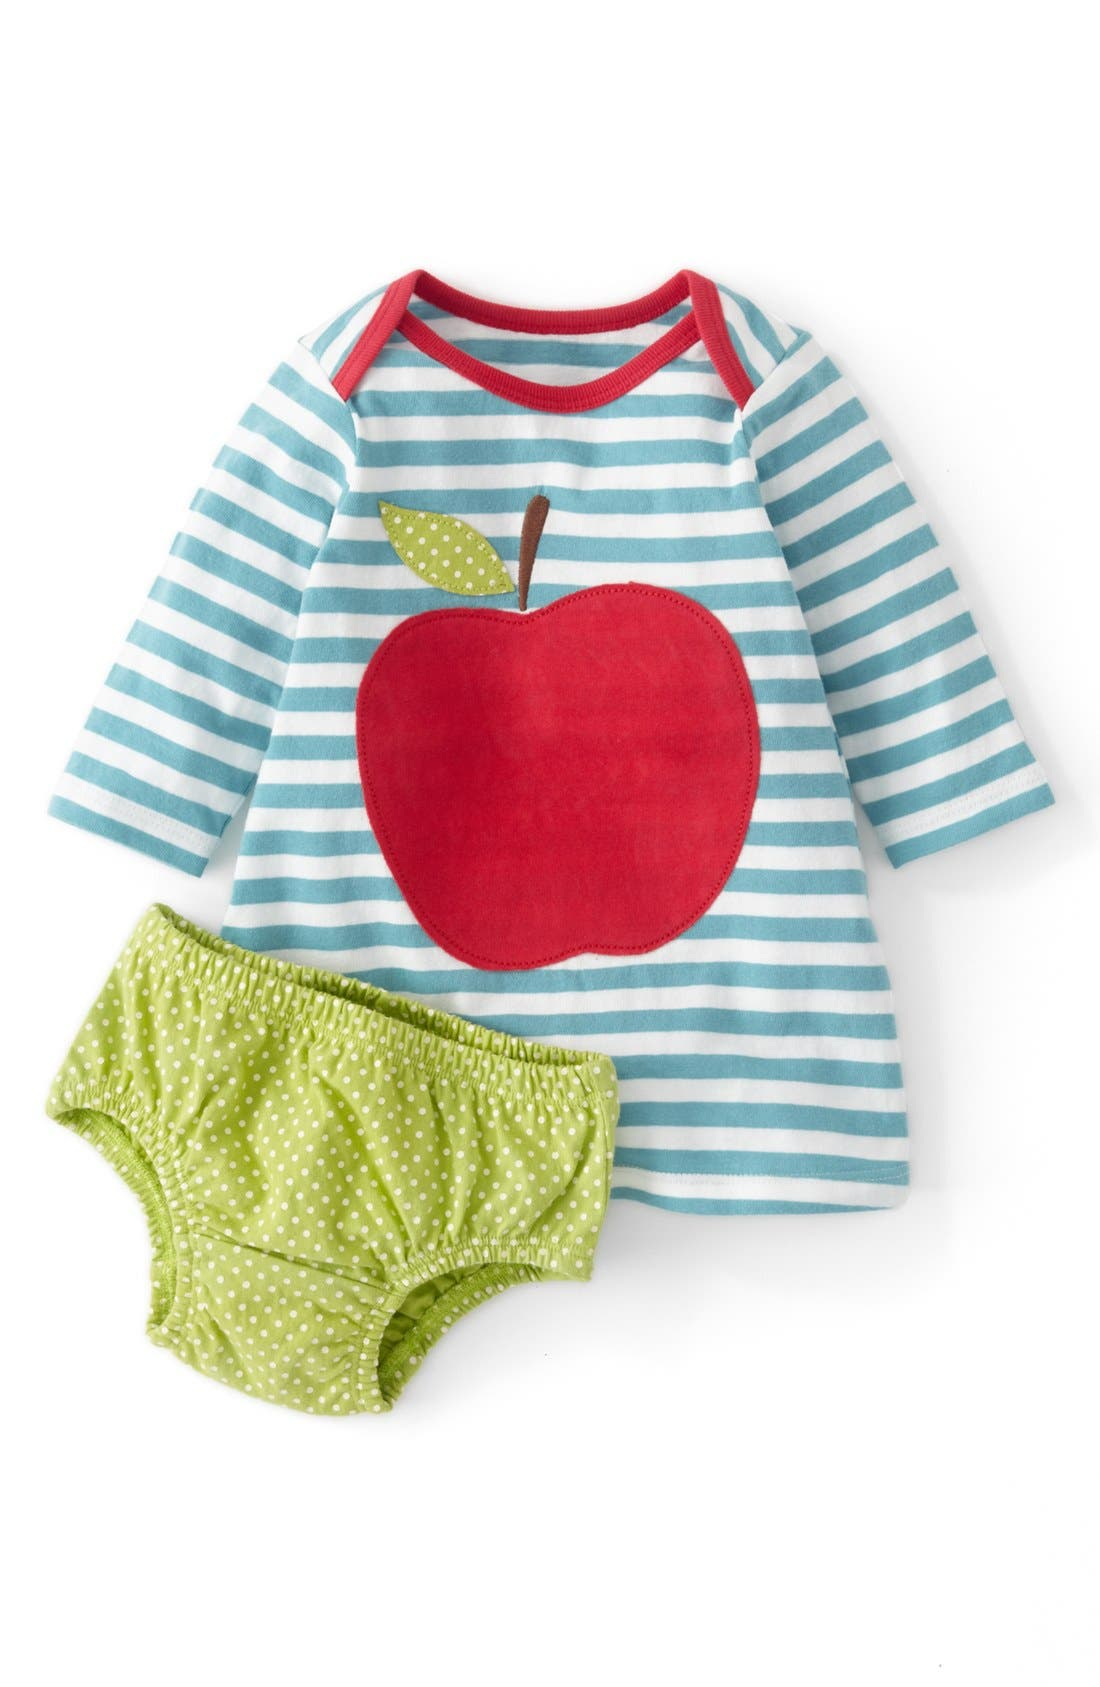 Main Image - Mini Boden Appliqué Stripe Jersey Dress (Baby Girls)